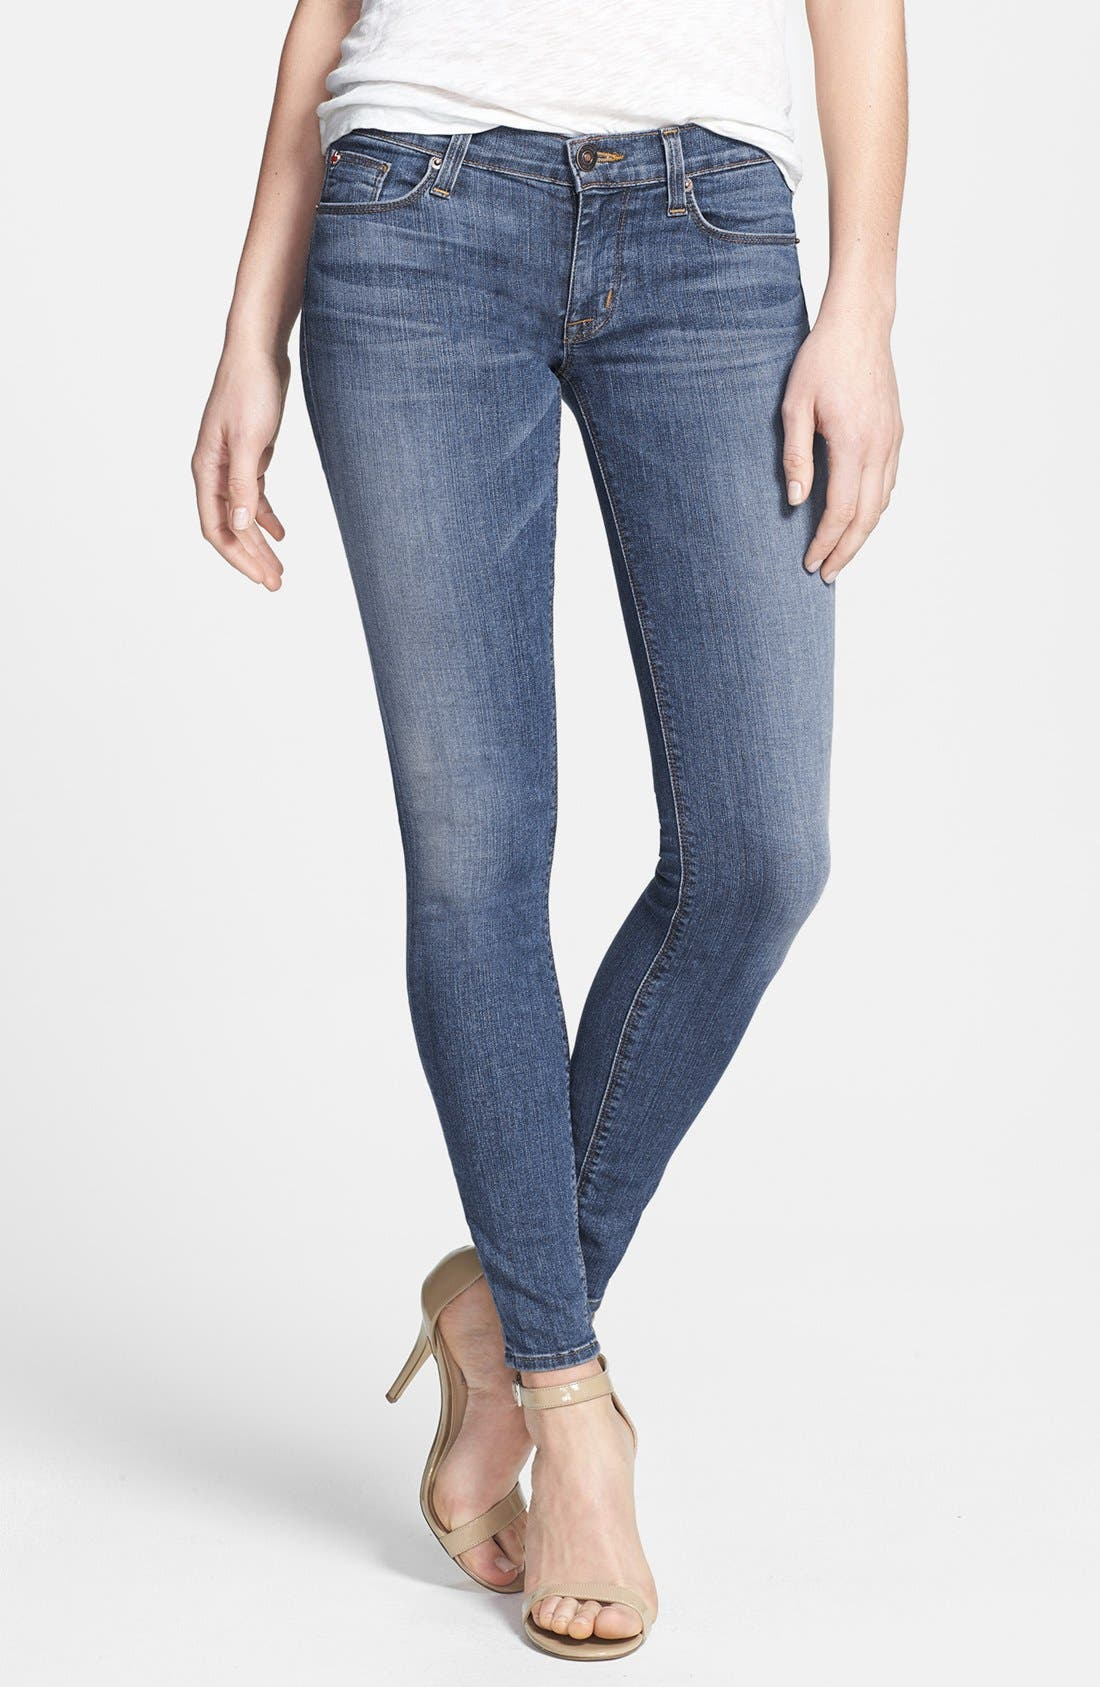 Alternate Image 1 Selected - Hudson Jeans 'Krista' Super Skinny Jeans (Floyd 2)